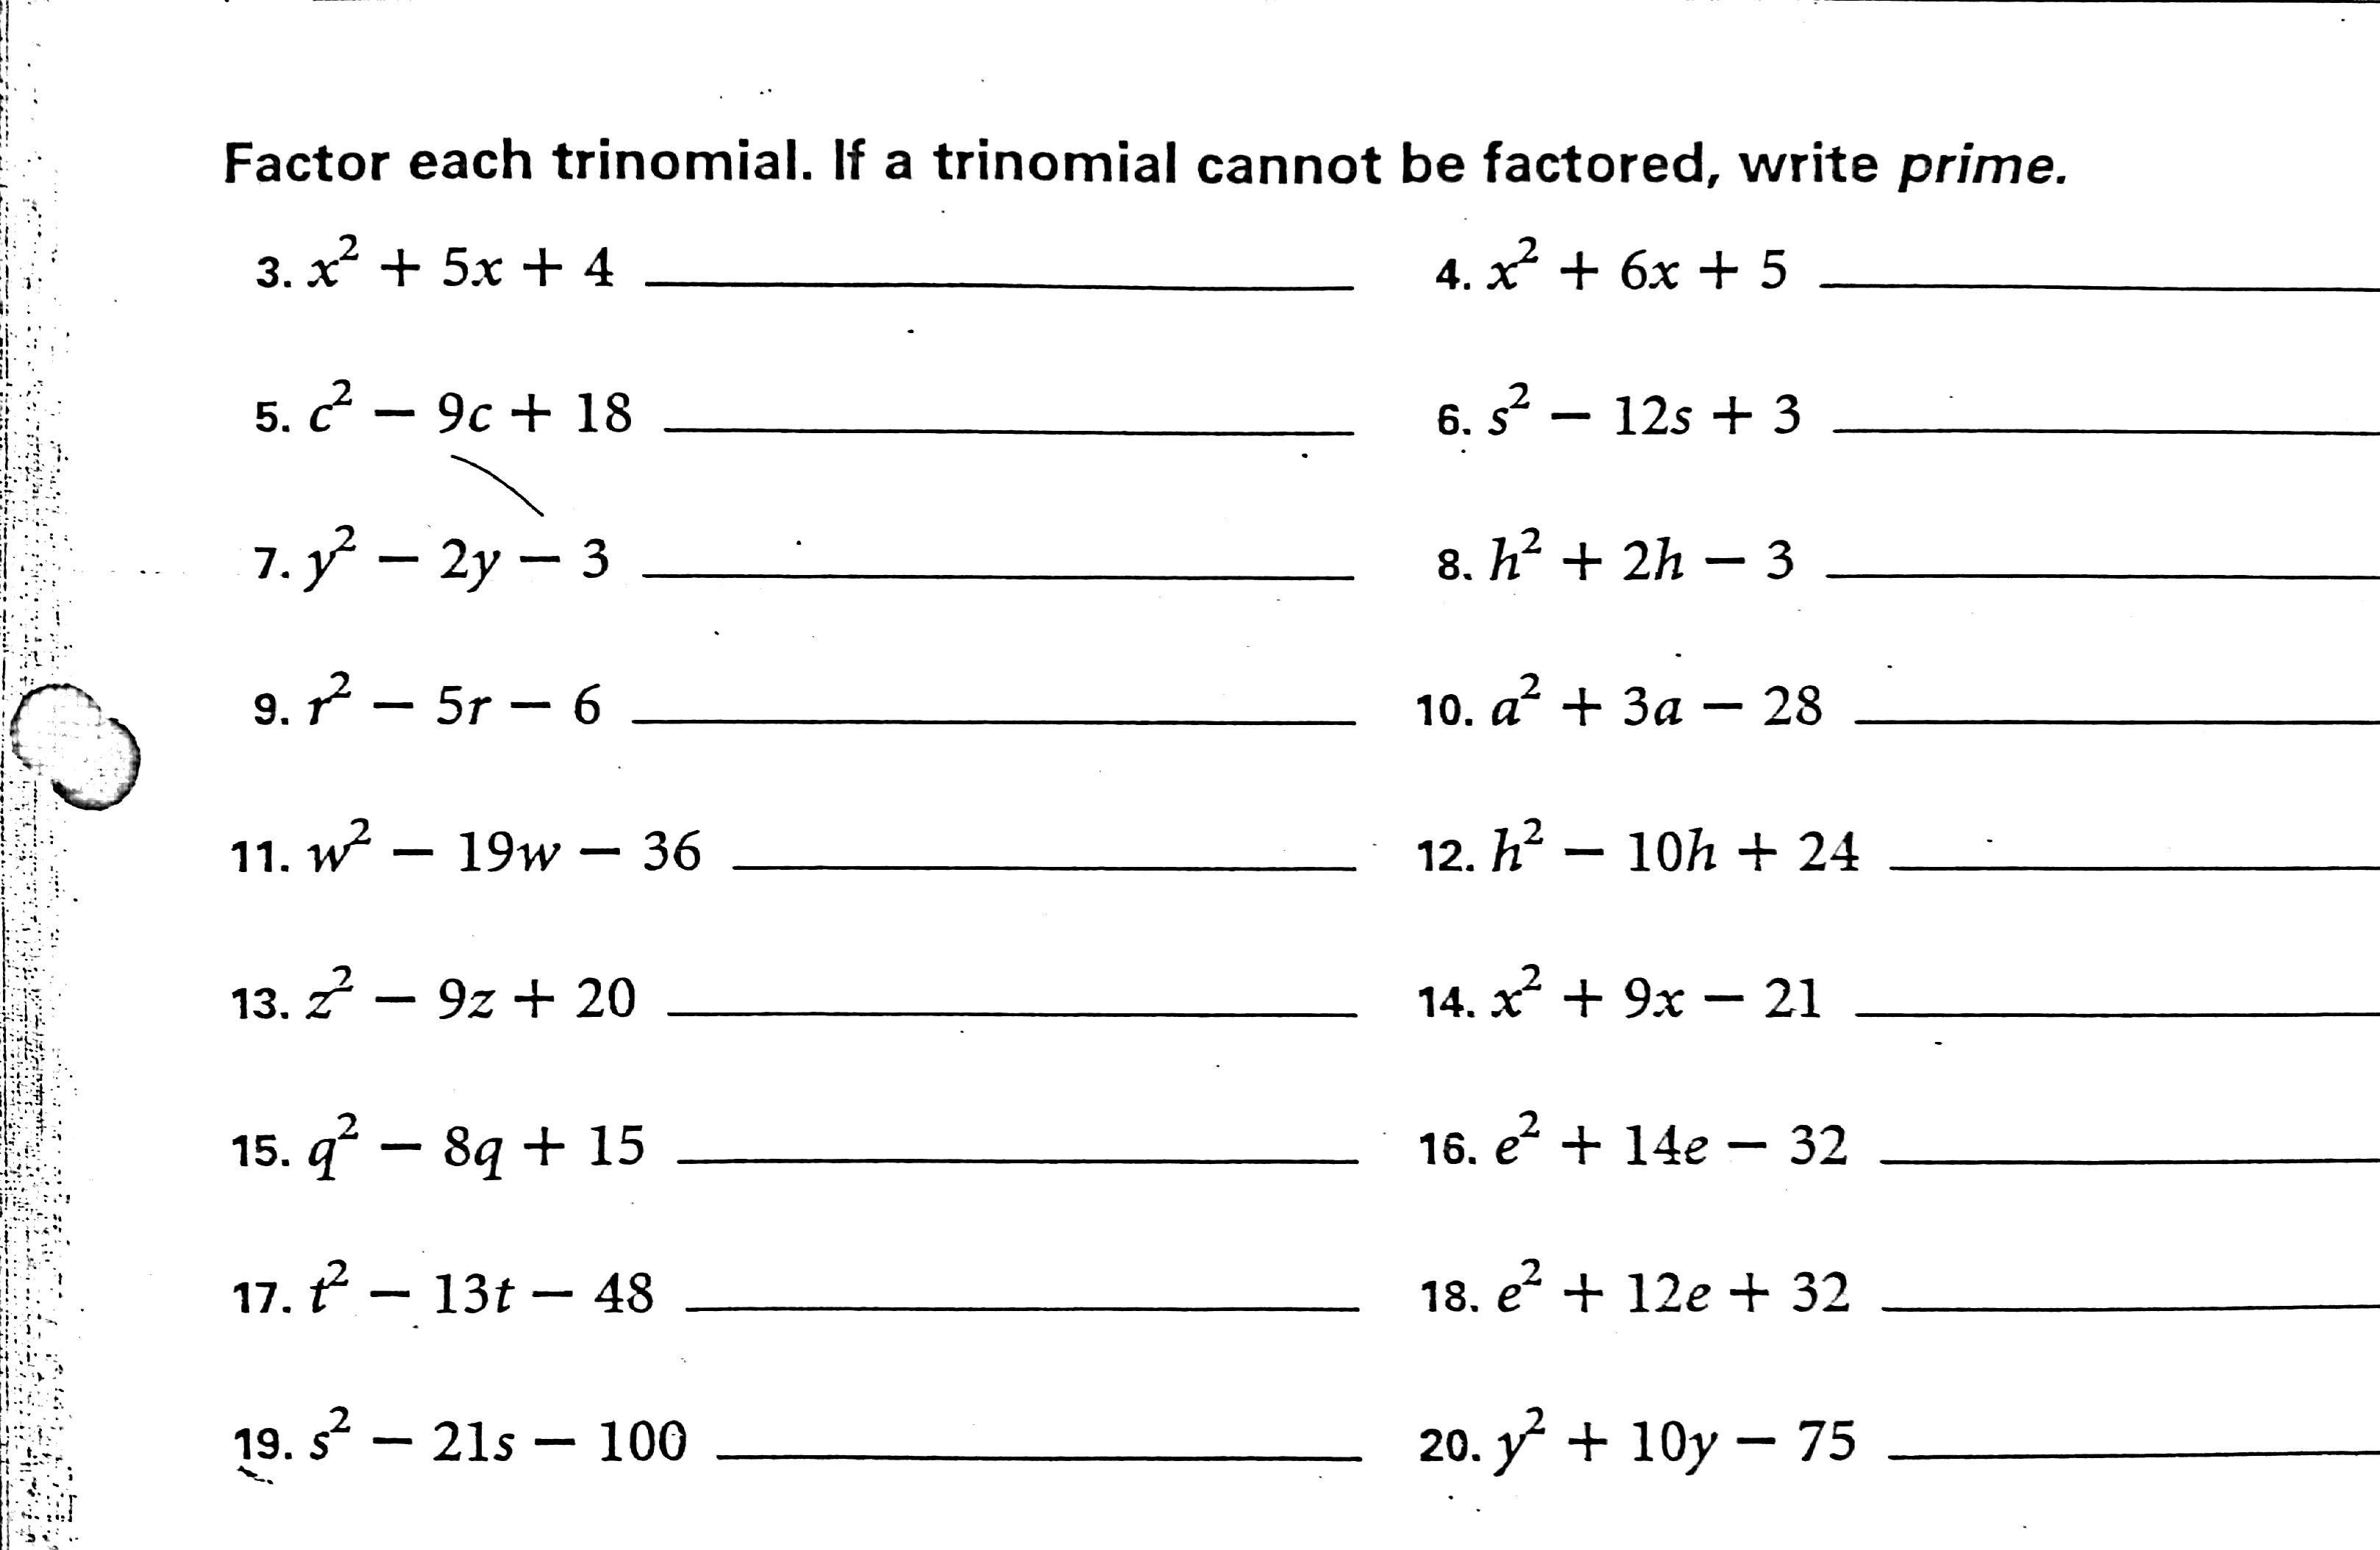 Proatmealus  Fascinating Factoring Worksheet  Delwfgcom With Goodlooking Factoring Polynomials Practice Worksheet With Answers Coterraneo With Cool Creating Circle Graphs Worksheets Also Worksheet Examples For Students In Addition Find The Noun In The Sentence Worksheet And Stephen Covey Weekly Worksheet As Well As Literary Genres Worksheets Additionally Past Tense Practice Worksheets From Delwfgcom With Proatmealus  Goodlooking Factoring Worksheet  Delwfgcom With Cool Factoring Polynomials Practice Worksheet With Answers Coterraneo And Fascinating Creating Circle Graphs Worksheets Also Worksheet Examples For Students In Addition Find The Noun In The Sentence Worksheet From Delwfgcom